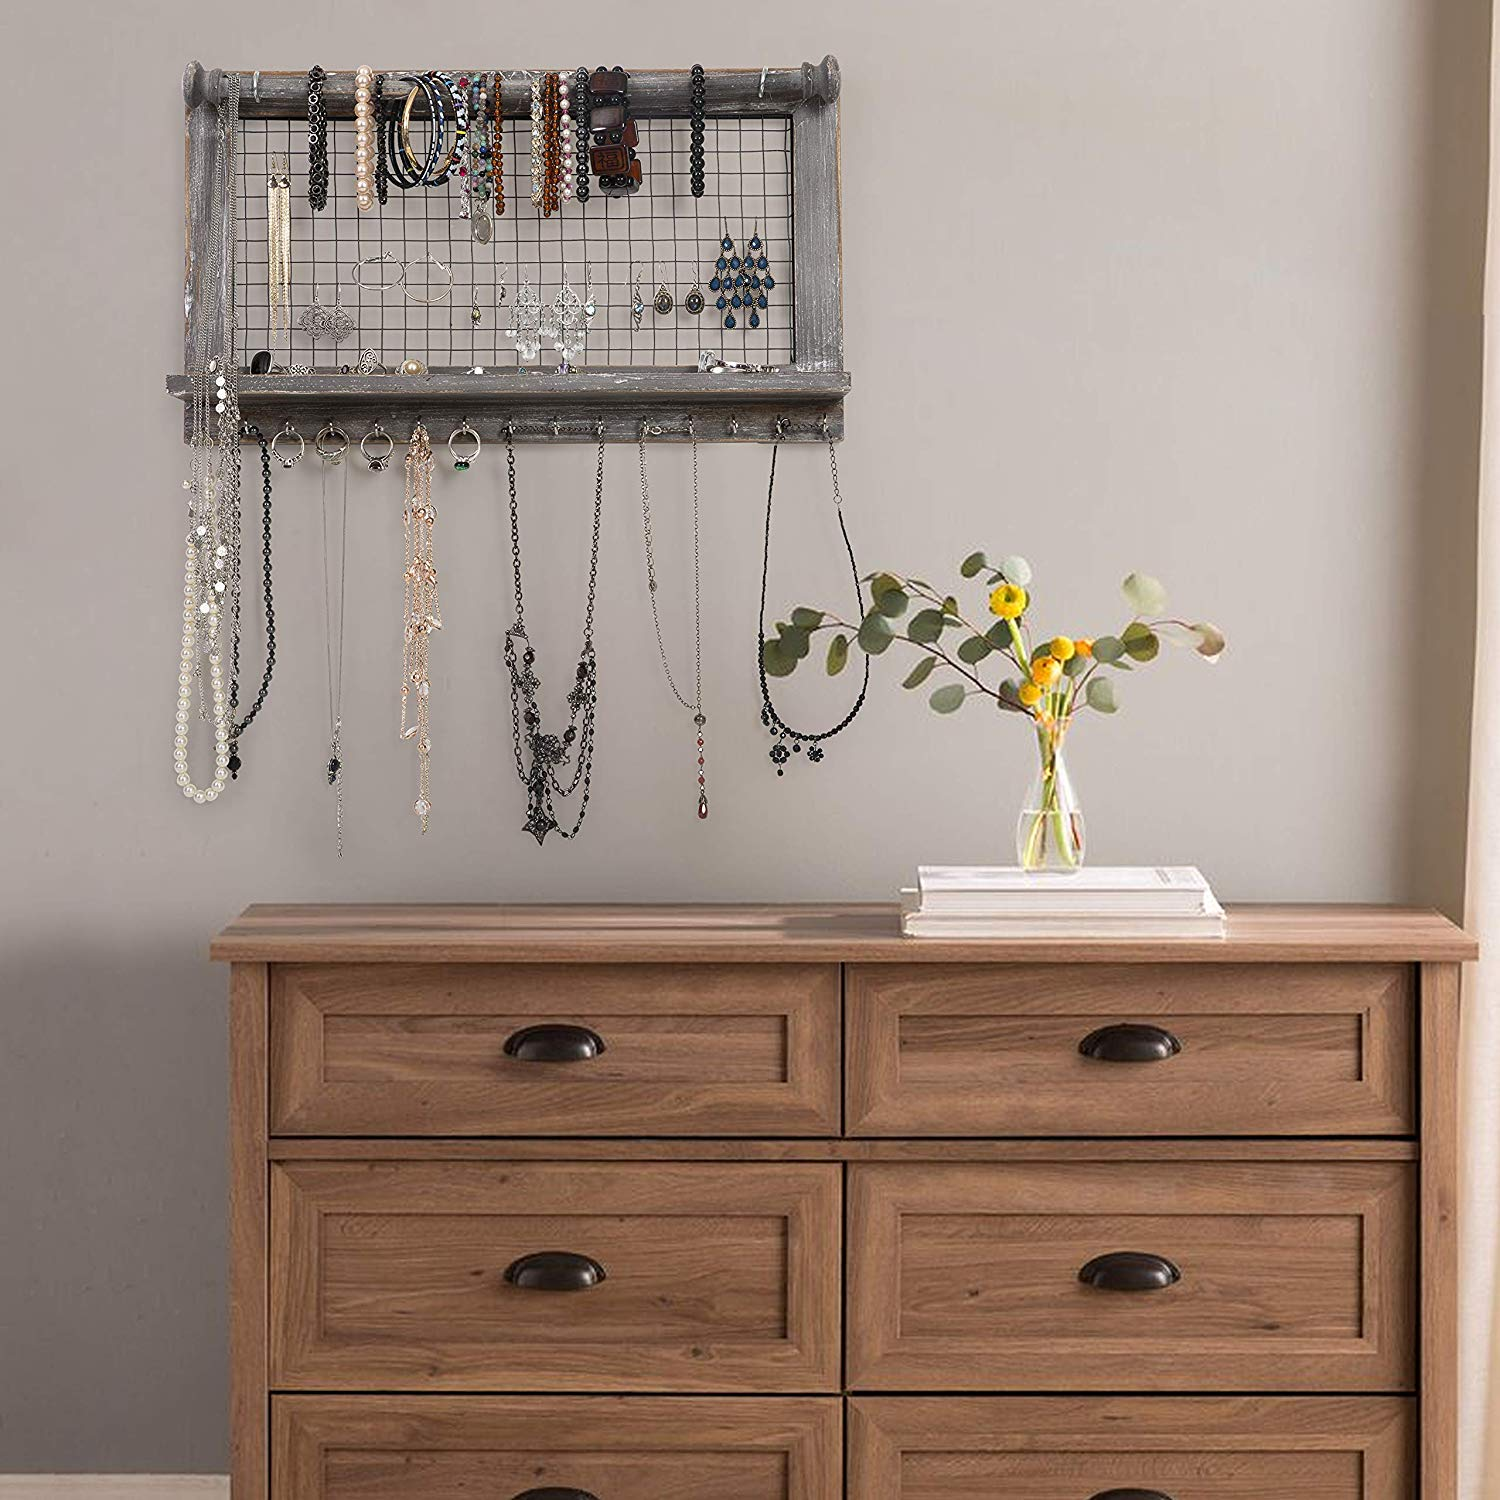 Rustic Jewelry Organizer with Bracelet Rod Wall Mounted l ...